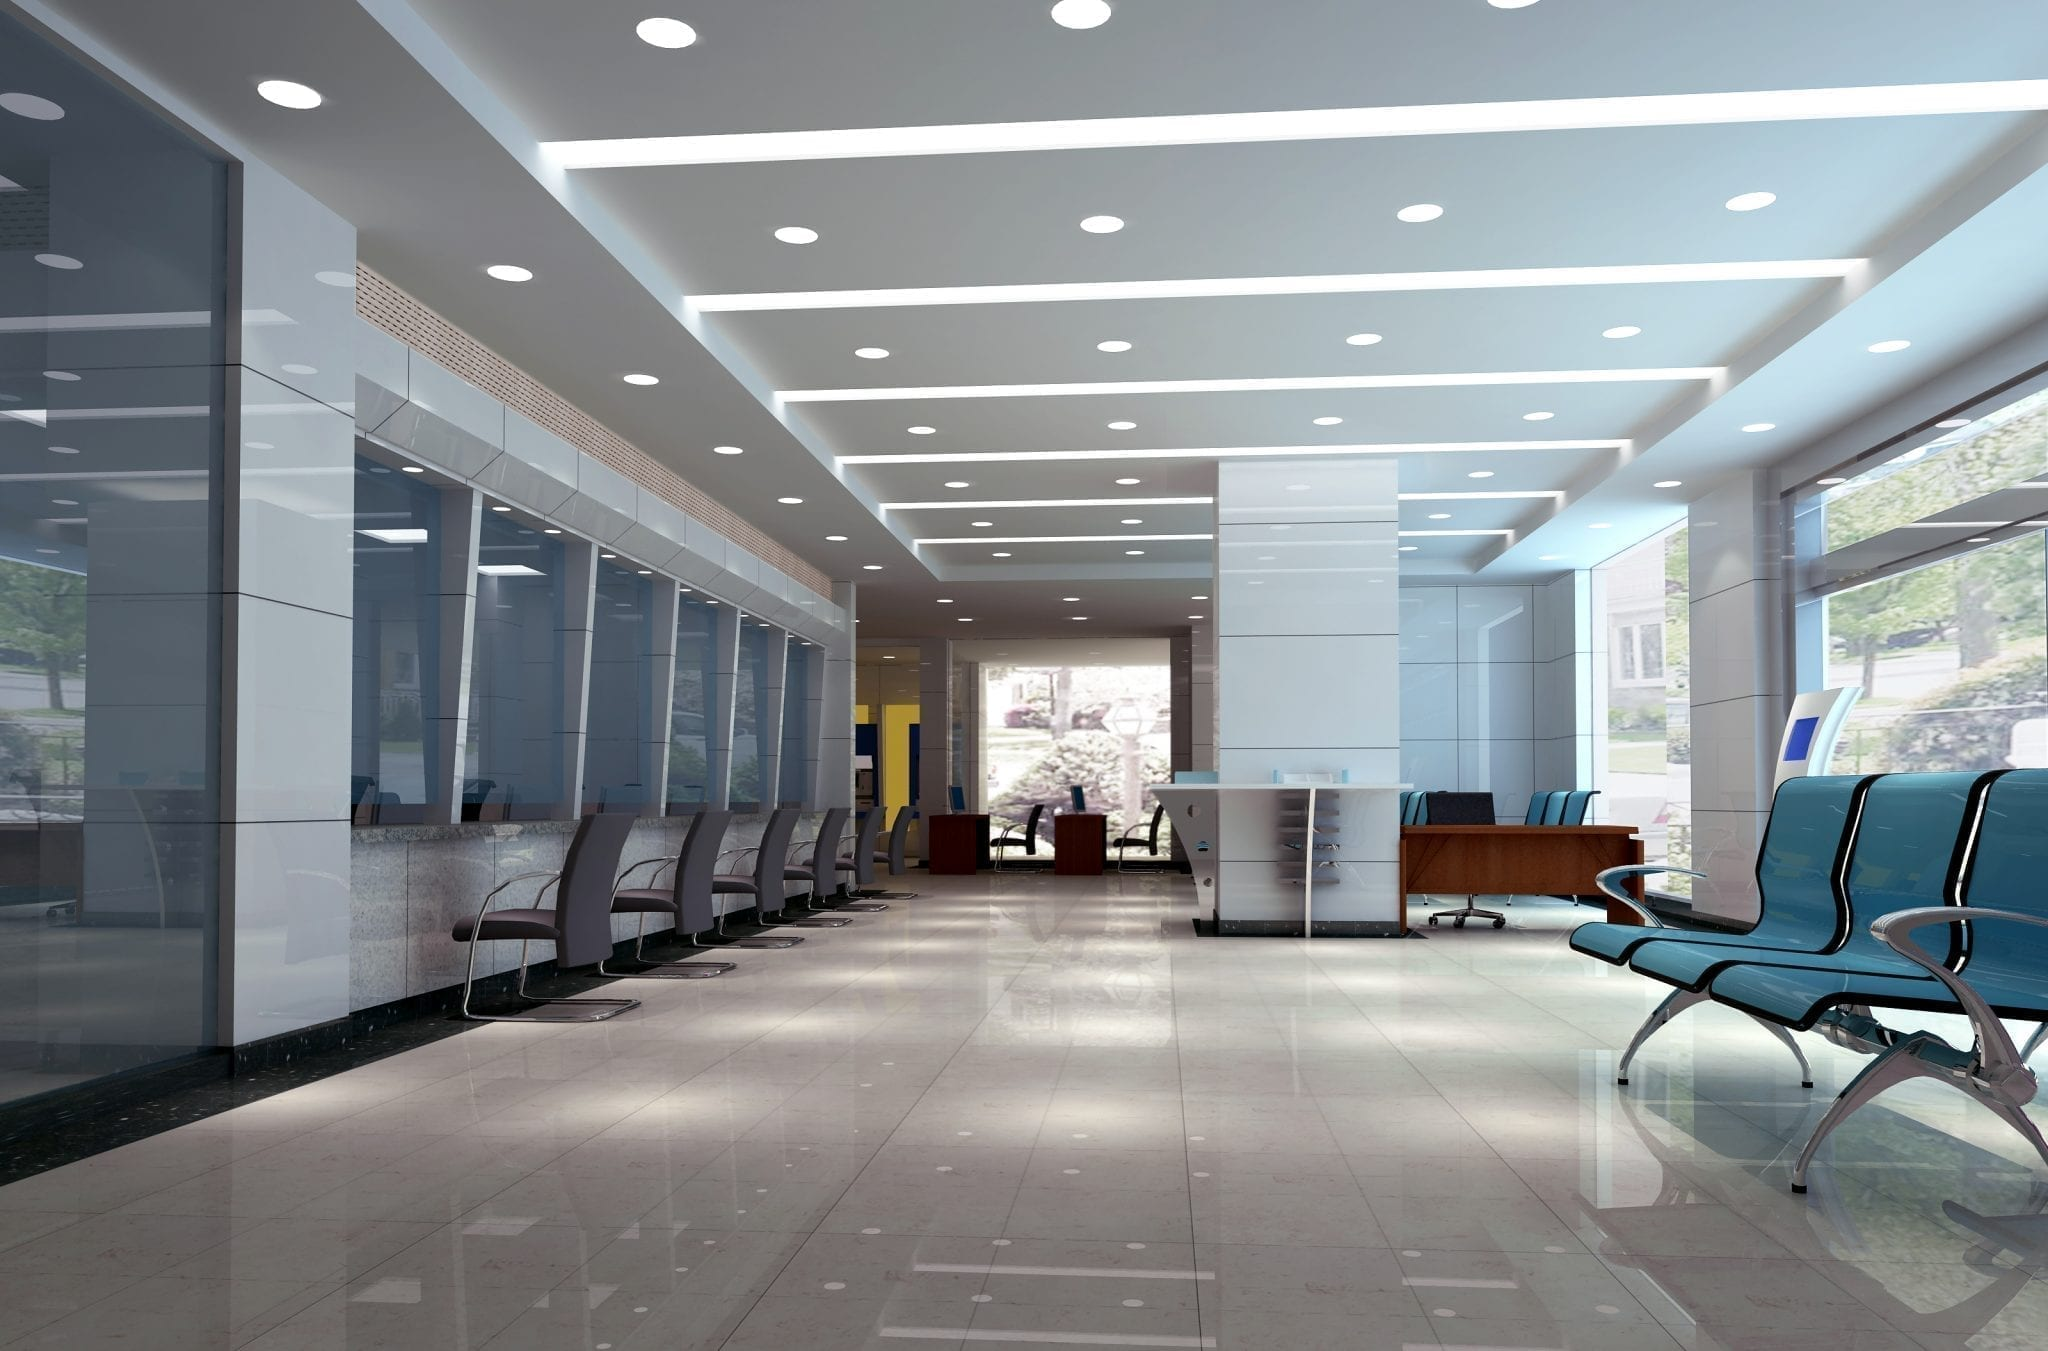 Benefits Of Green Cleaning In Business Environments